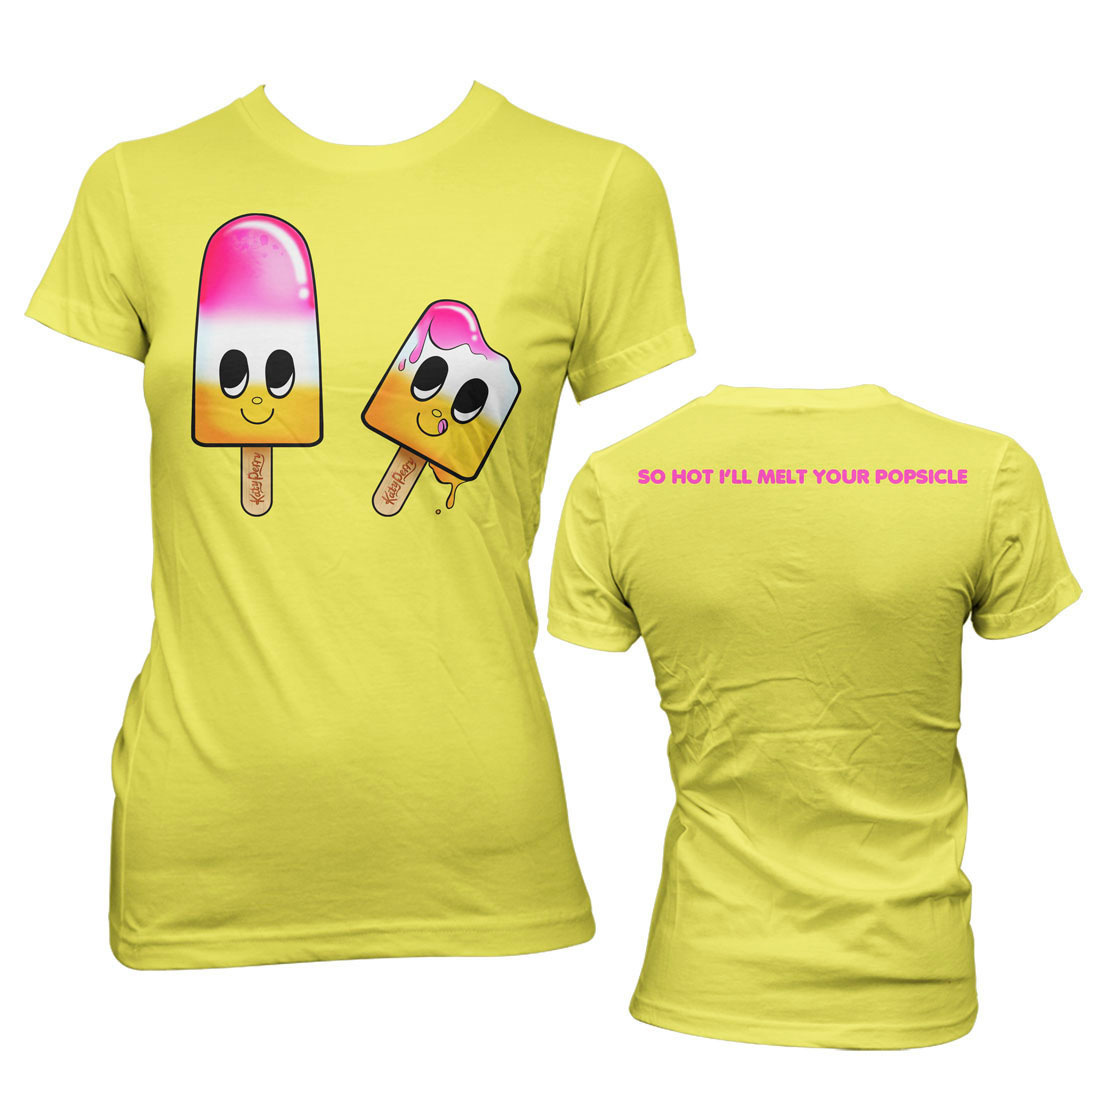 Katy Perry Melted Popsicle Girlie T-Shirt